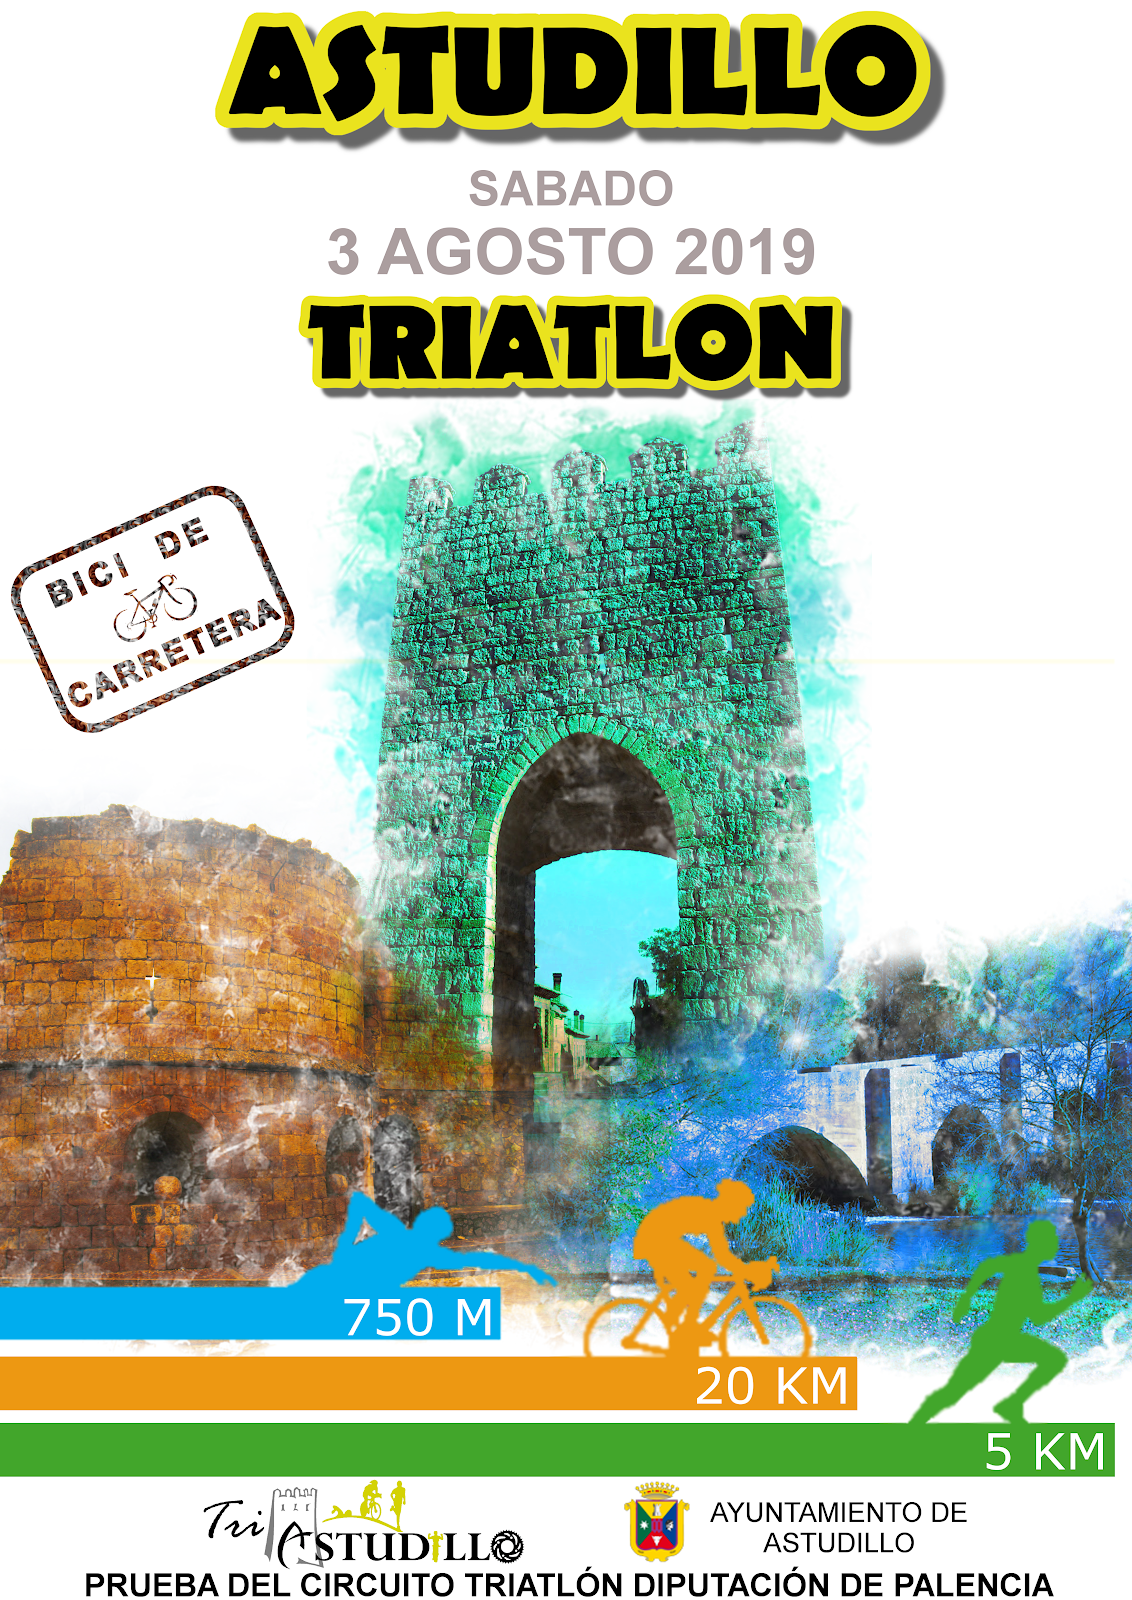 TRIATLON DE ASTUDILLO